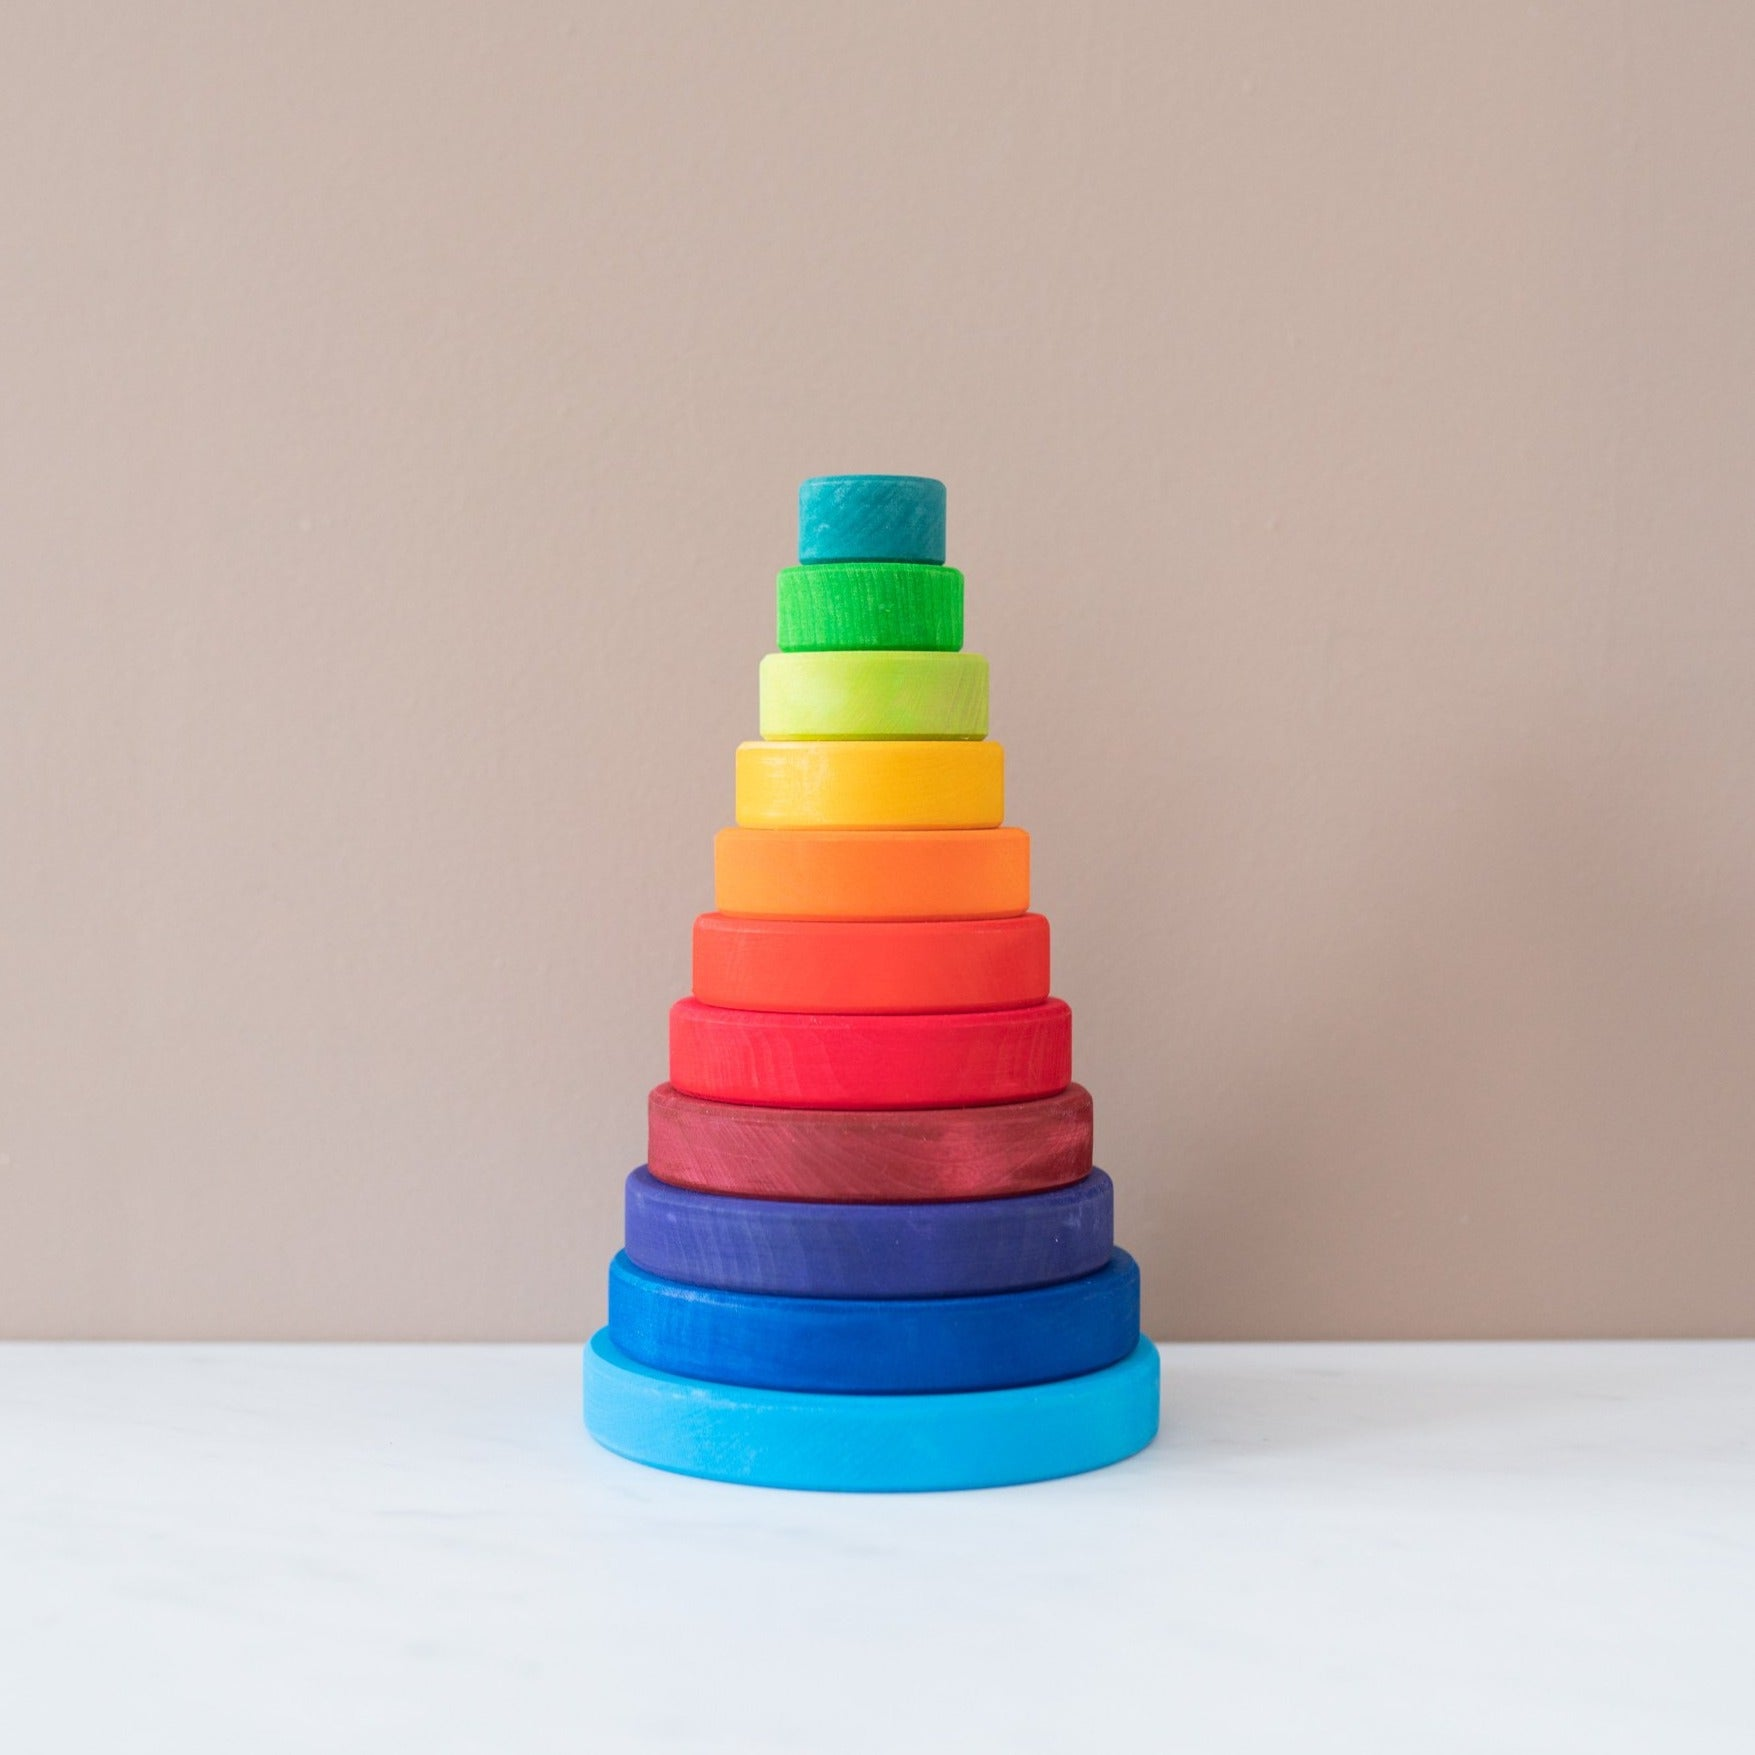 Large Stacking Conical Tower